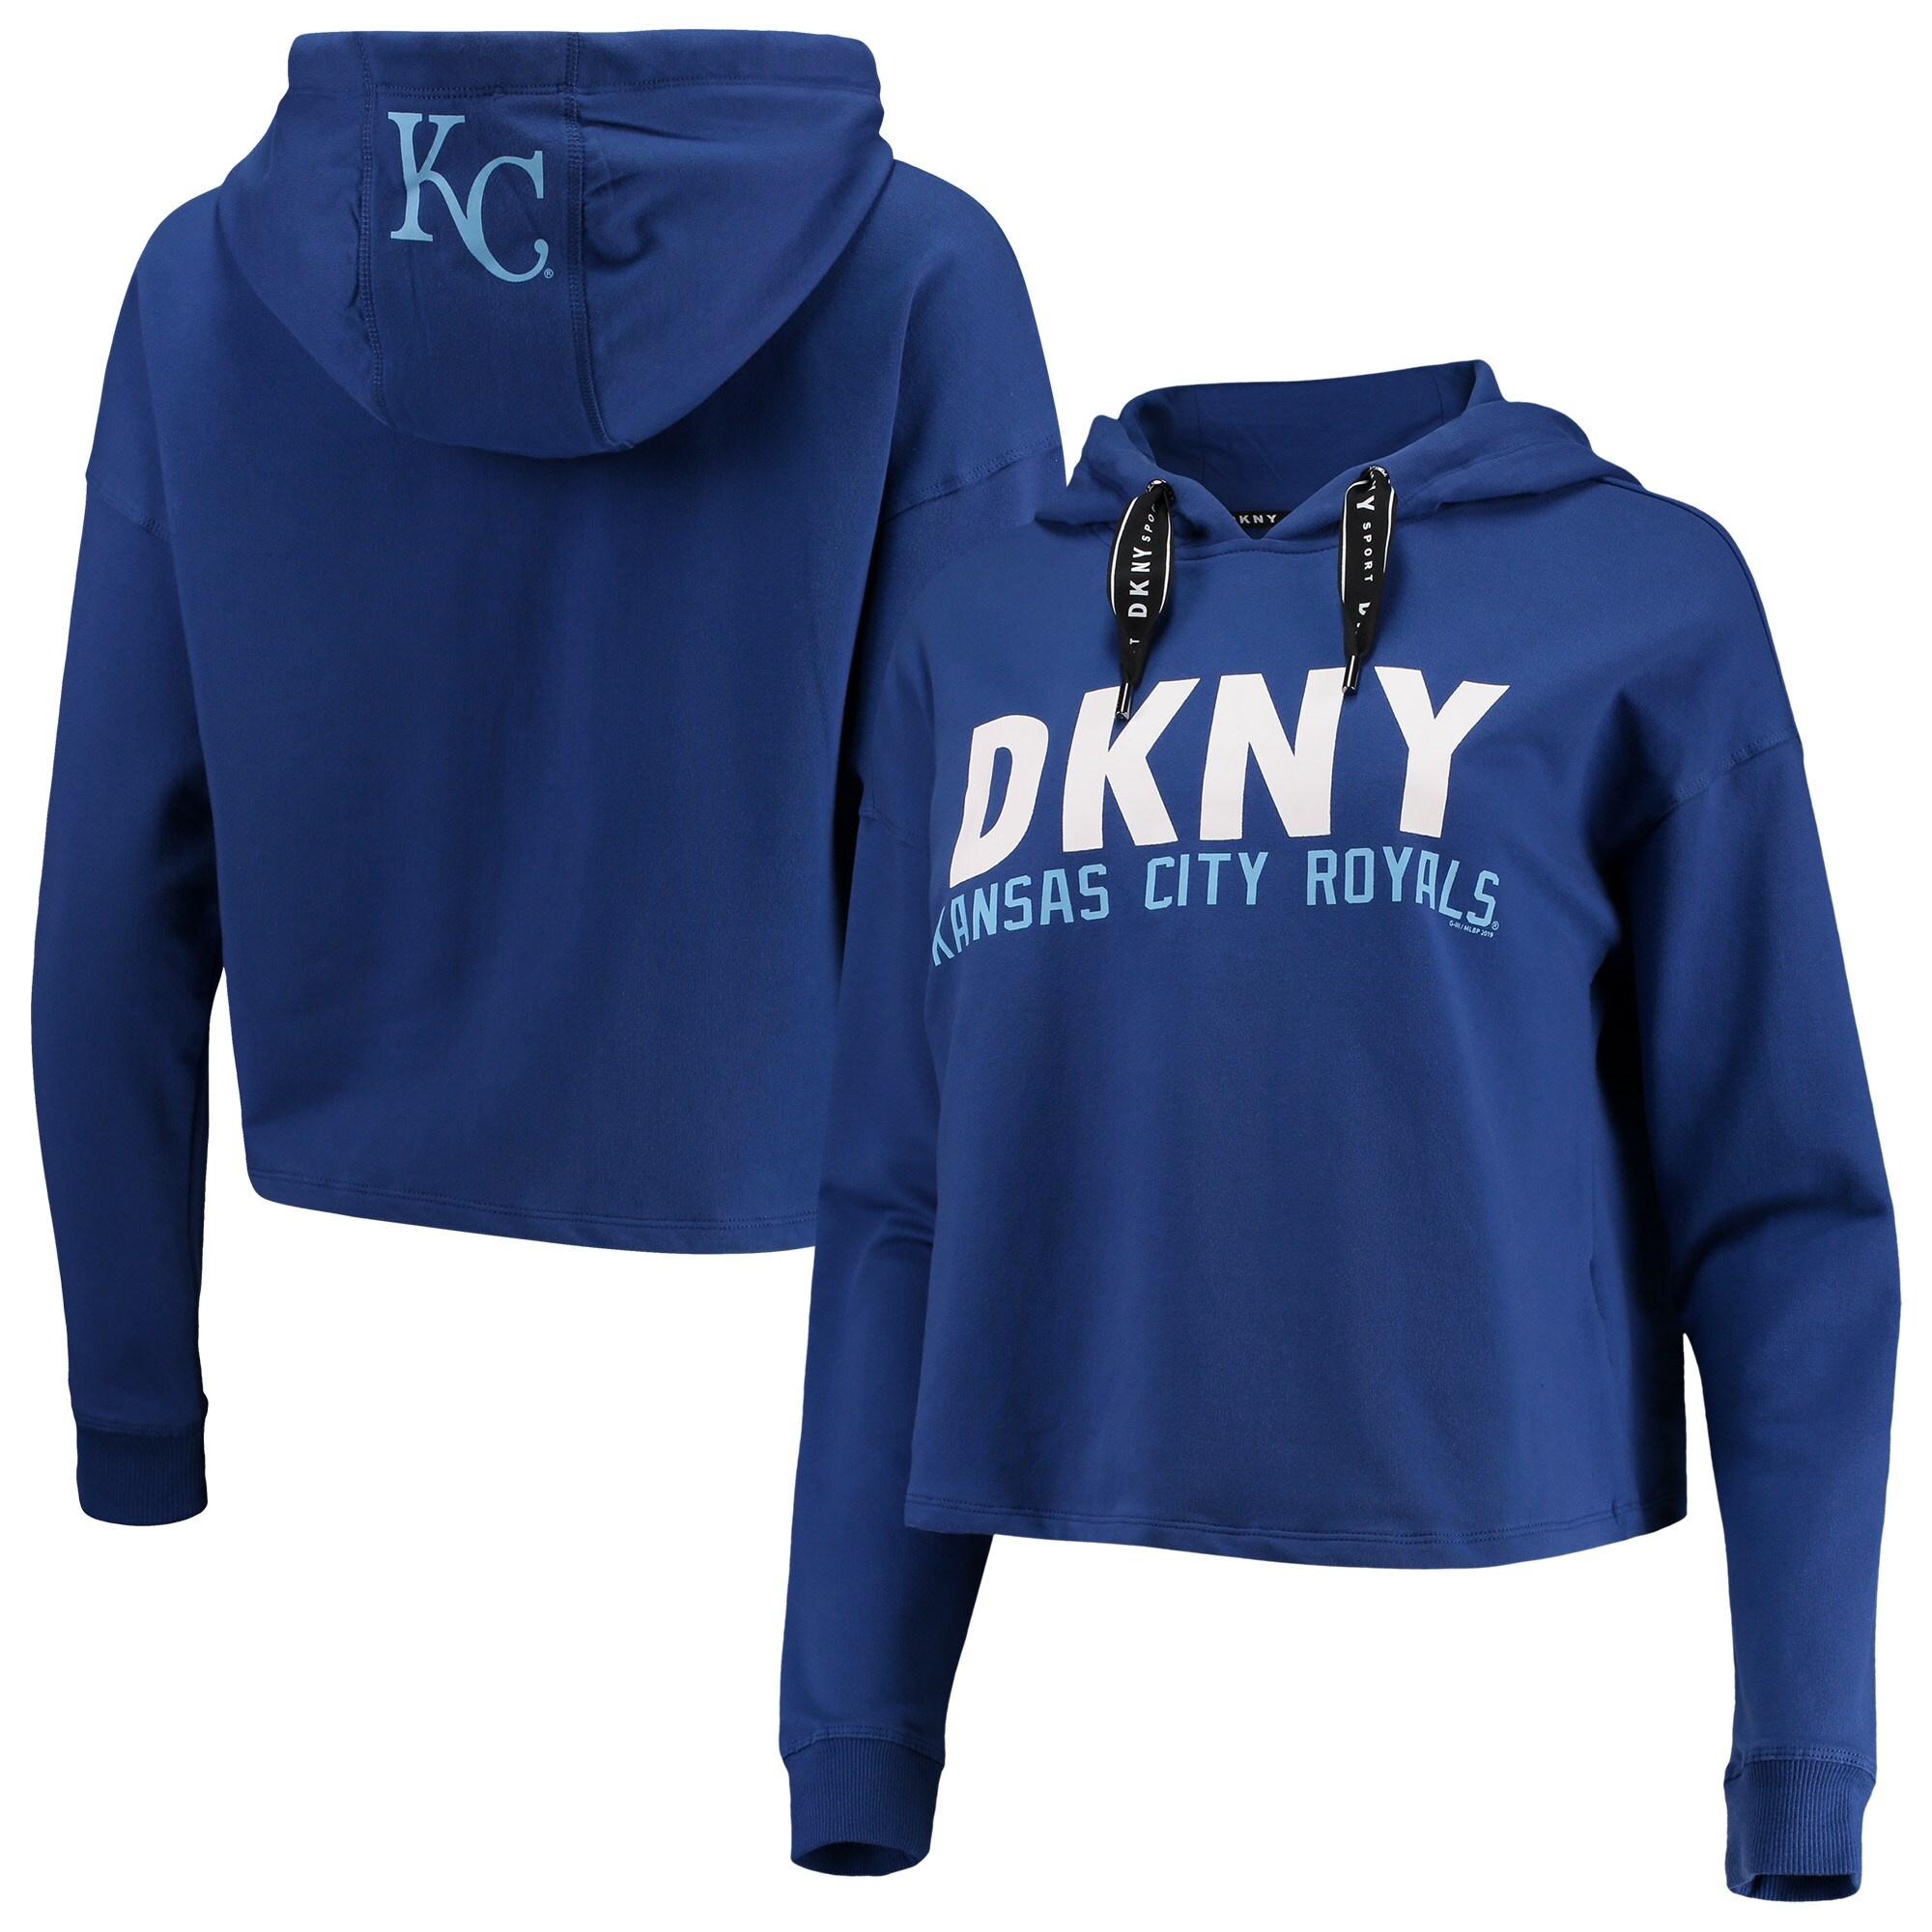 Kansas City Royals DKNY Sport Women's The Maddie Pullover Hoodie - Royal